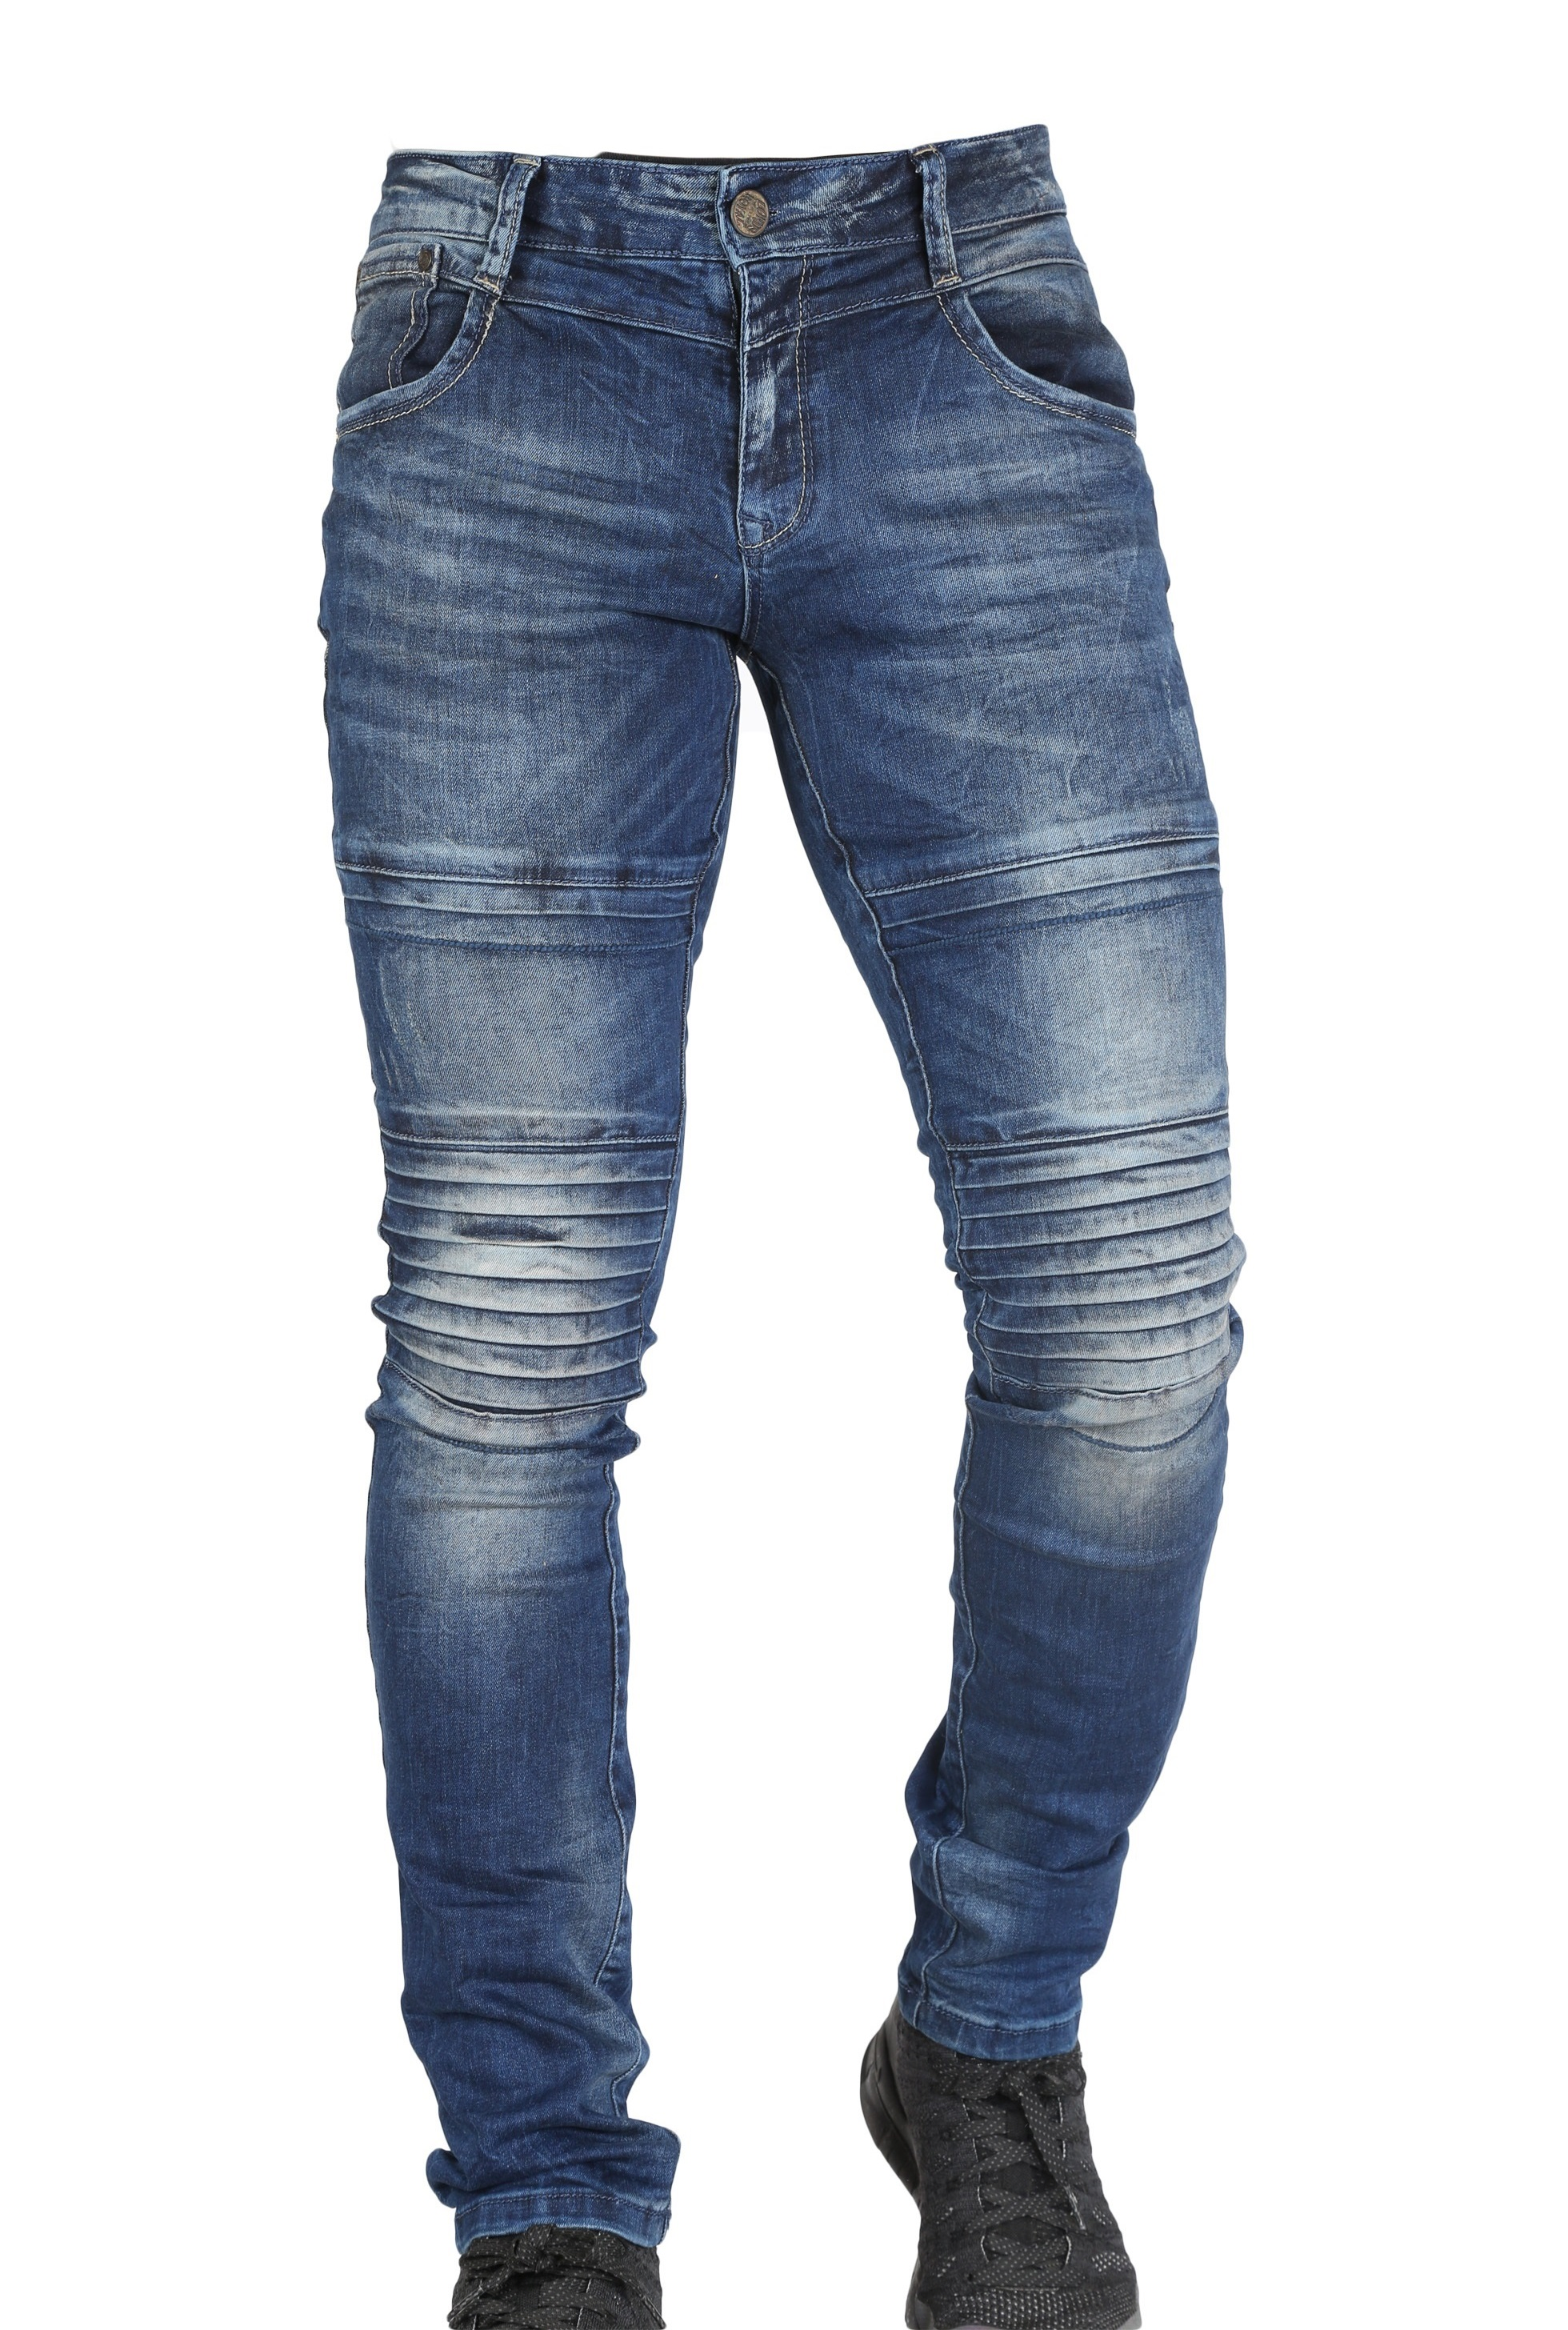 Jeans homme pas cher fashion – vêtements homme - So Fashion Shop cf4a759a87a8